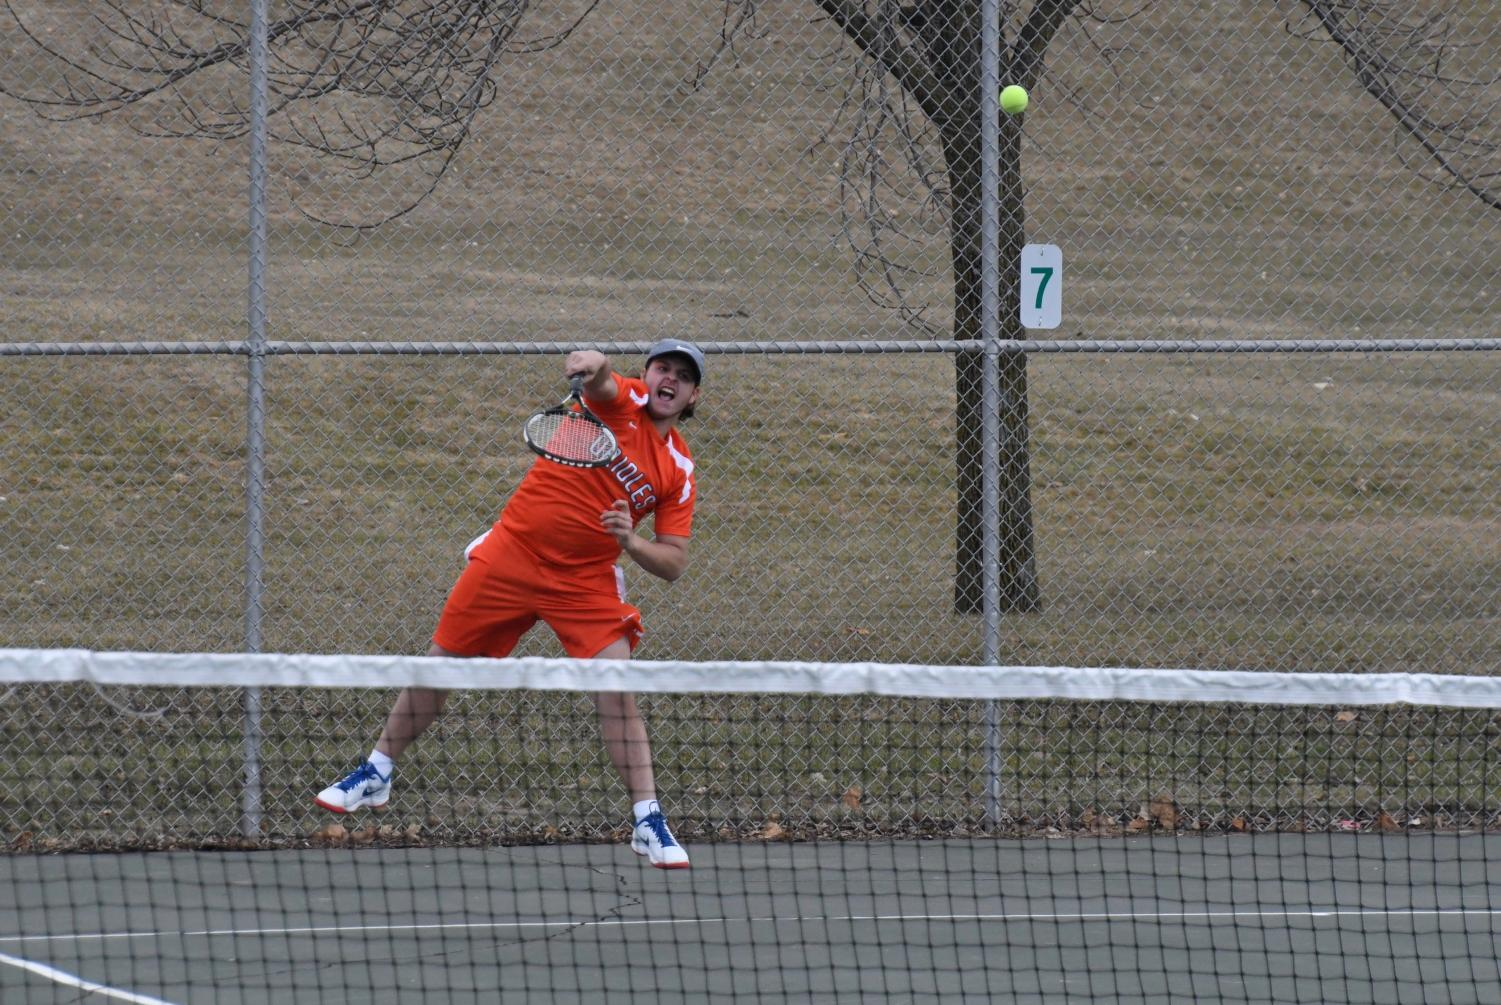 Junior Gerald Perlman hits a serve against Chanhassen Apr. 24. Perlman competed in the individuals tournament May 24 at Baseline Tennis Center.